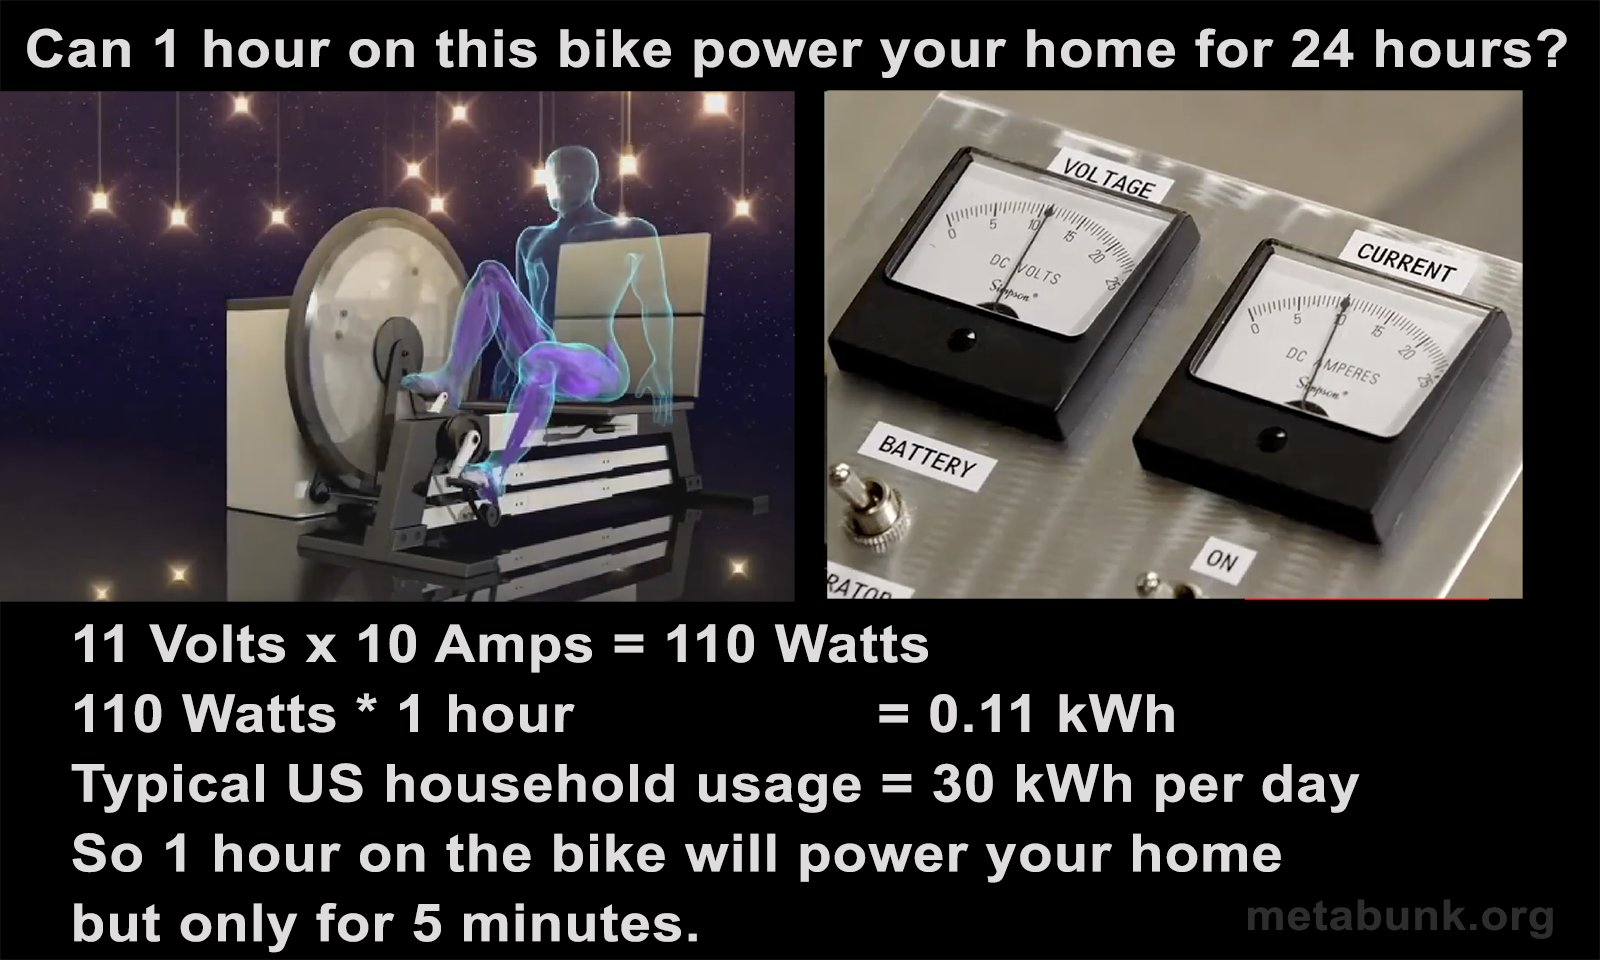 Bike_Power_Metabunk.